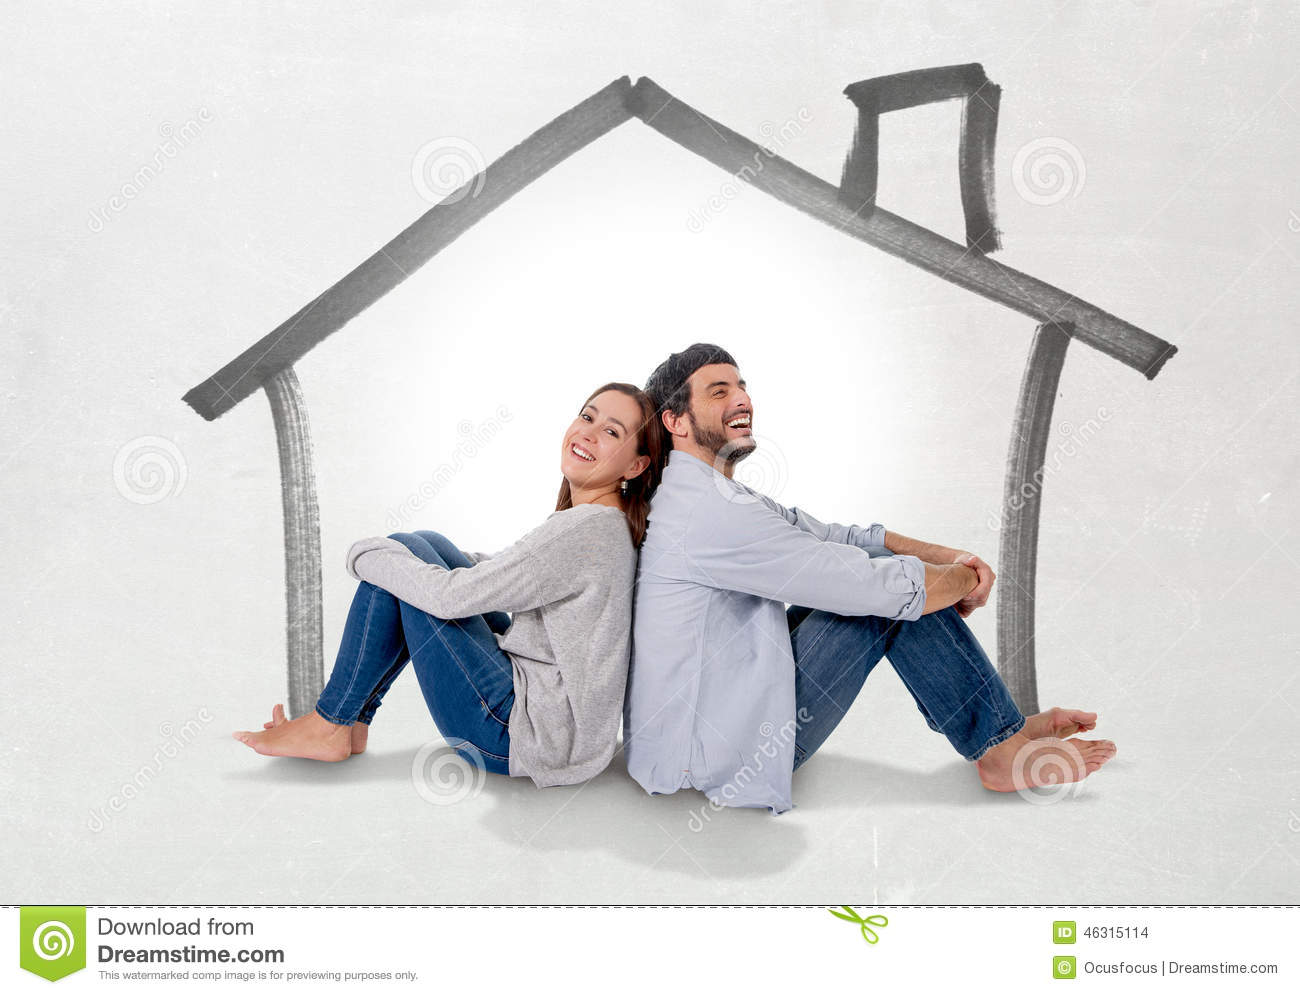 young-couple-dreaming-imaging-their-new-house-real-state-concept-attractive-modern-love-smiling-happy-together-sitting-46315114